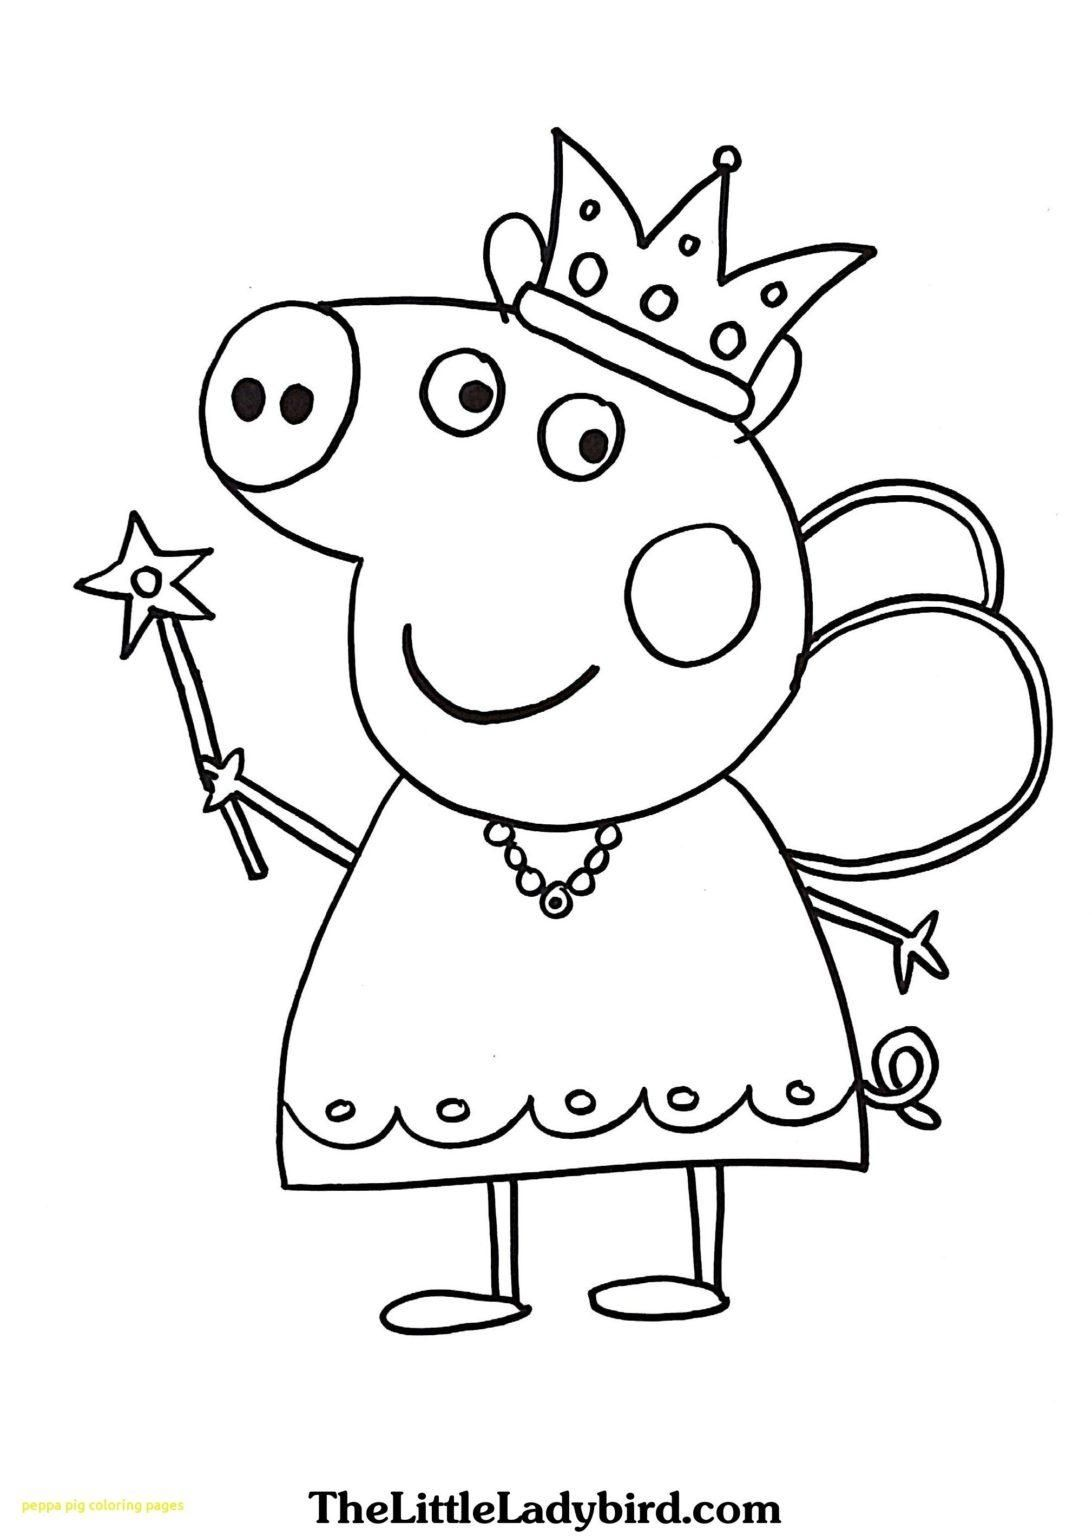 16 Printable Colouring Sheets Halloween in 2020 Peppa